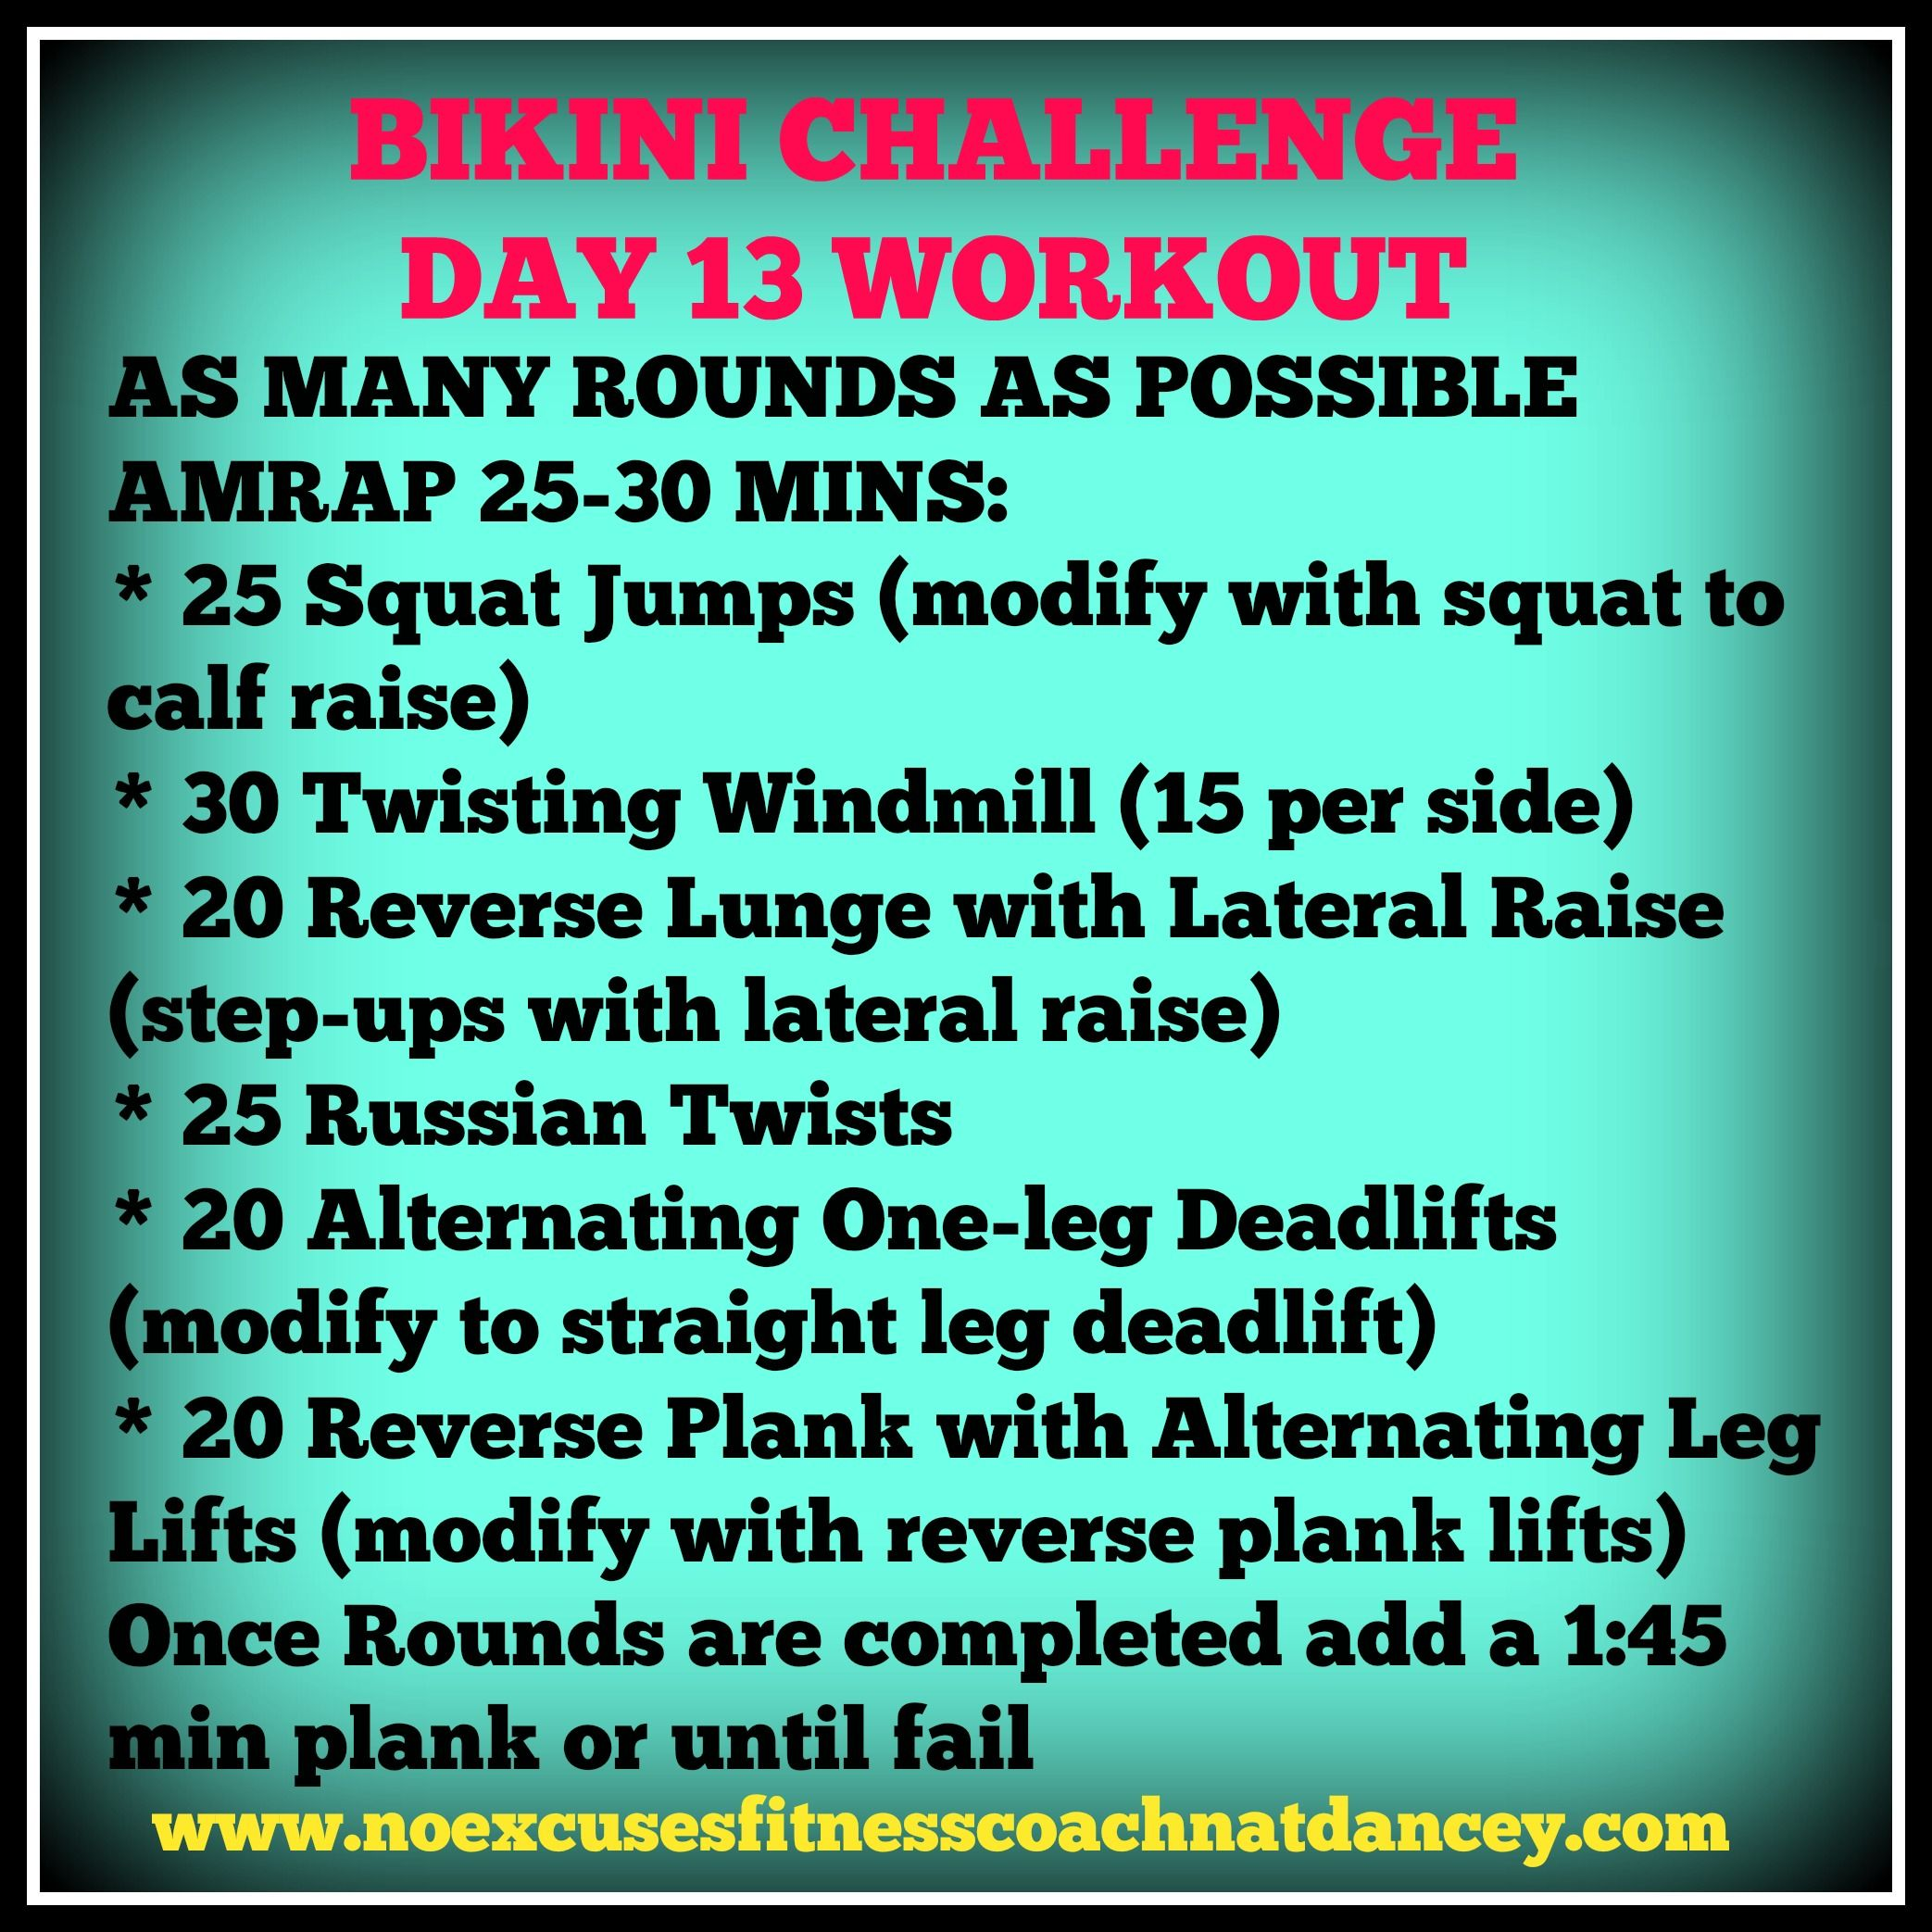 Day 13. AMRAP's are always tough but I love them because you are fighting against time to get the most amount of rounds possible. It is never too late to join this free challenge by connecting with me on Facebook. #getfit #bikinichallenge